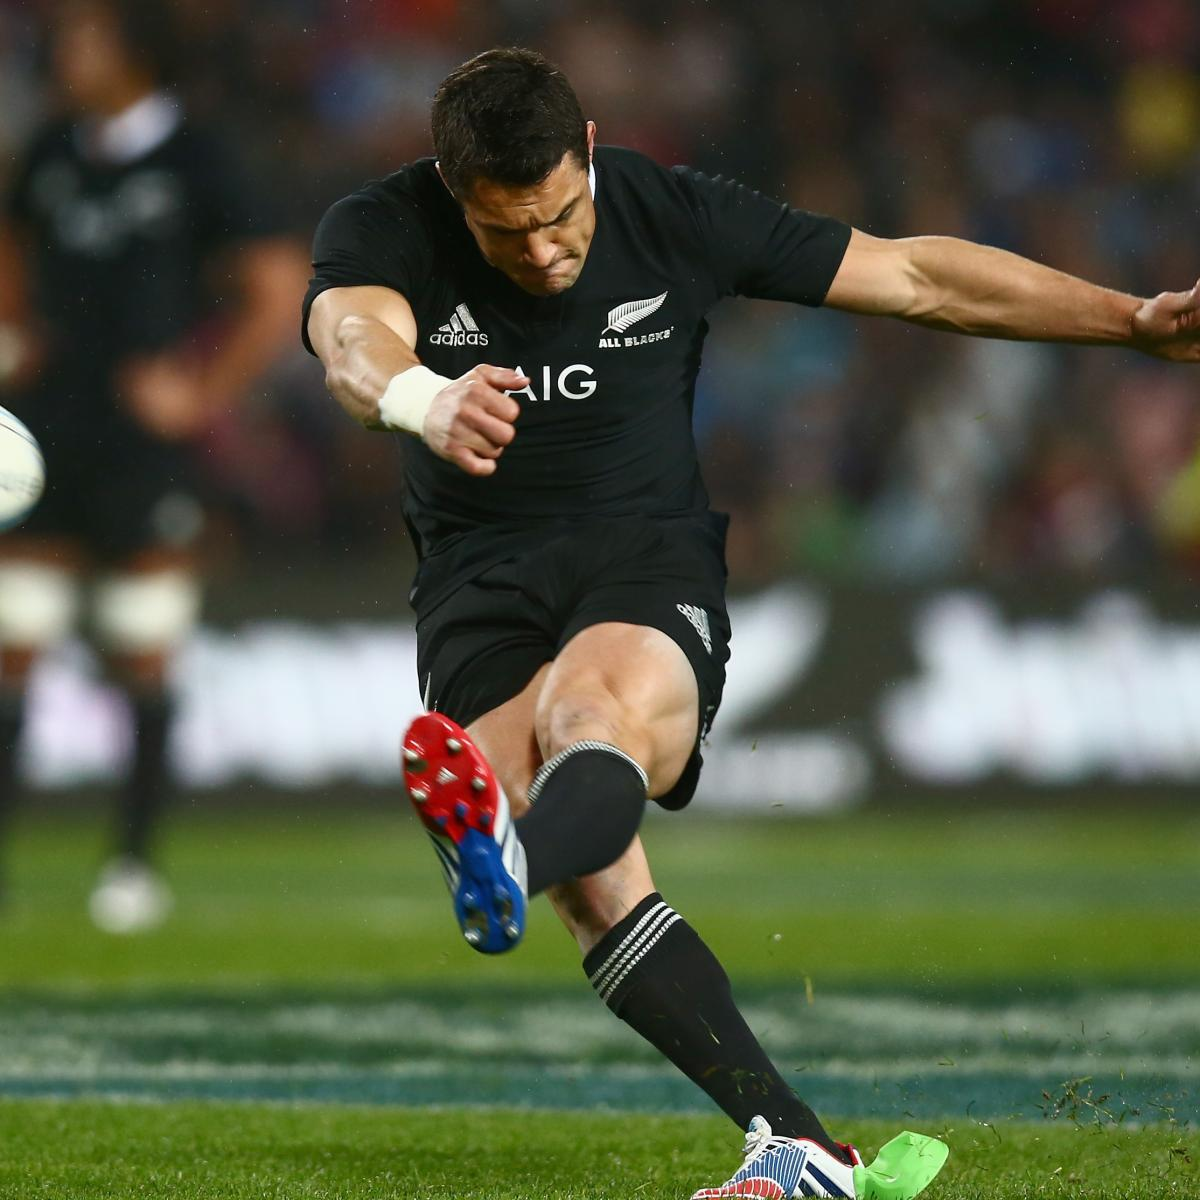 The Top 10 Place Kickers In The History Of Rugby